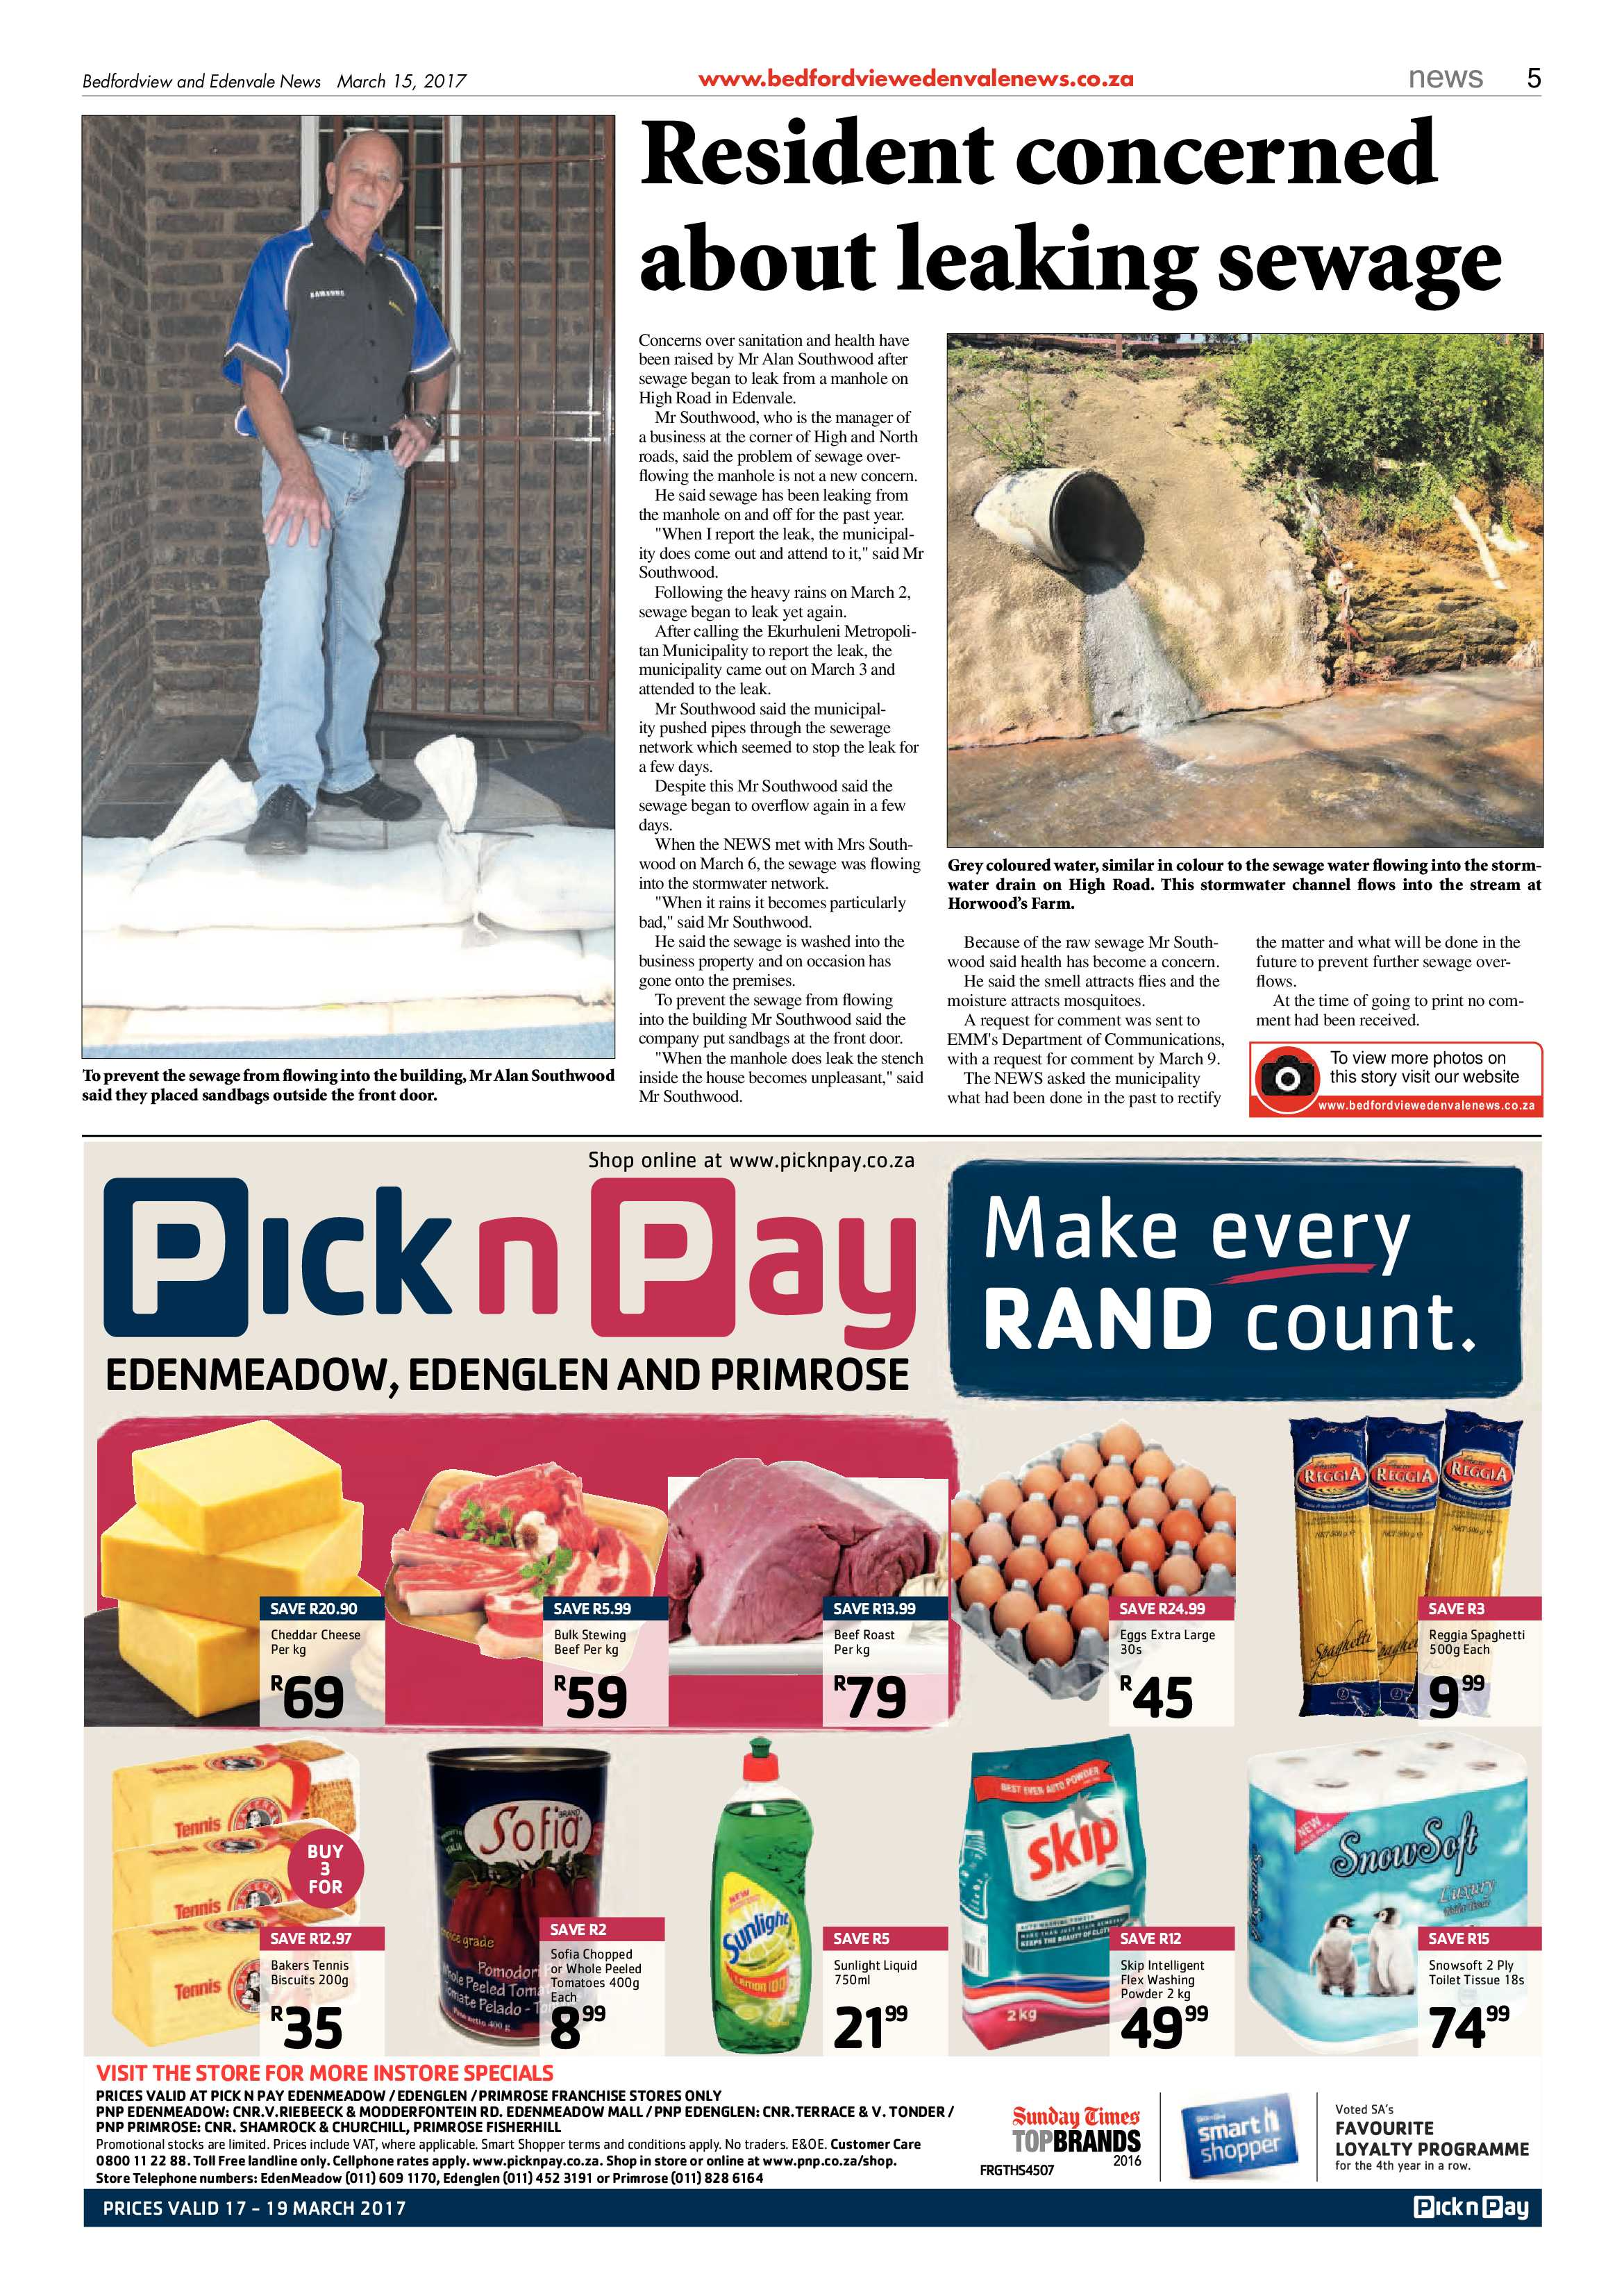 bedfordview-edenvale-news-15-march-2017-epapers-page-5